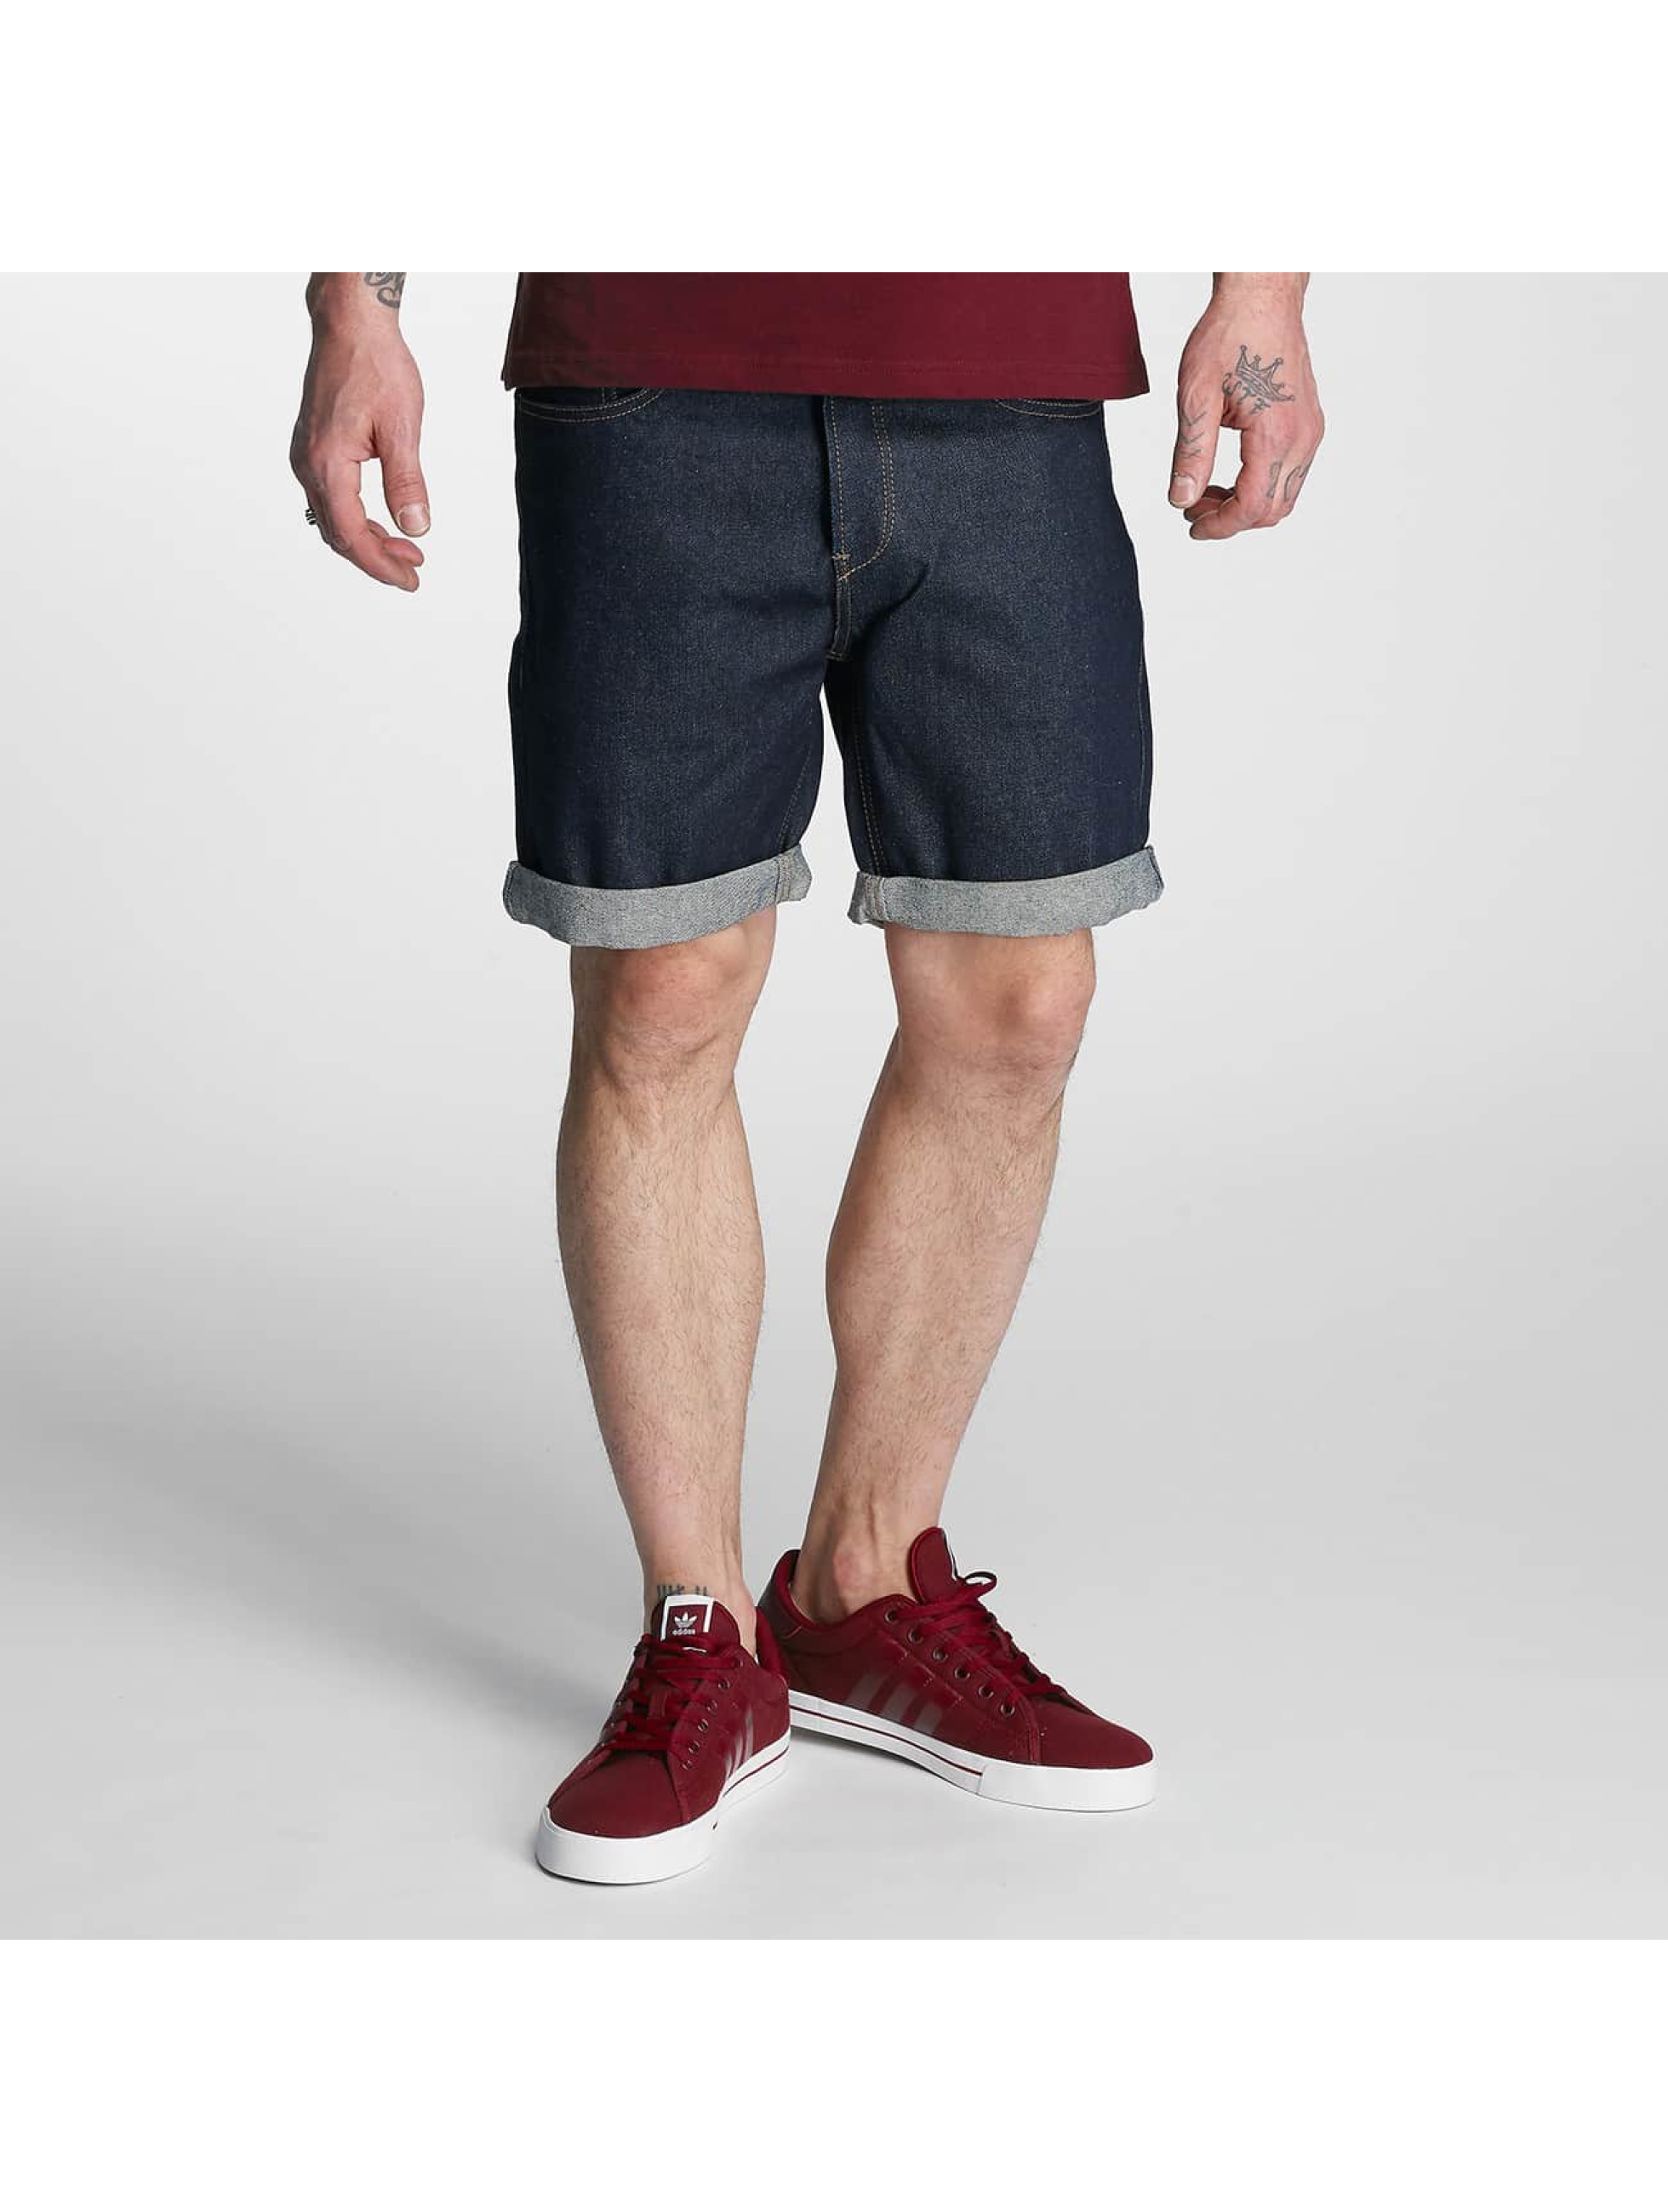 Solid Männer Shorts Denim in blau